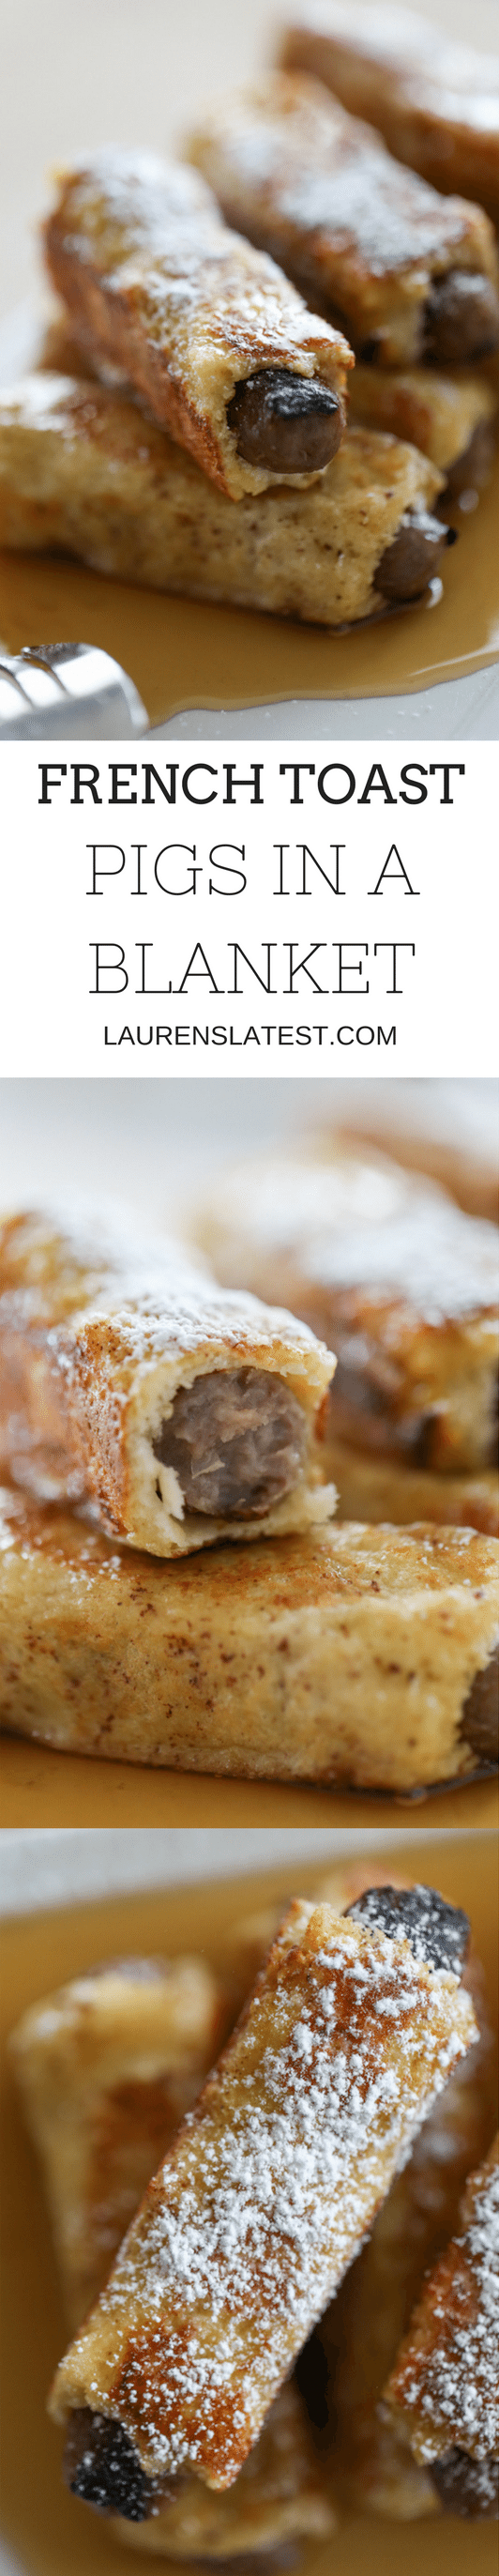 These pigs in a french toast blanket are the best of both worlds: a simple, savory-sweet breakfast that is perfect any day of the week.